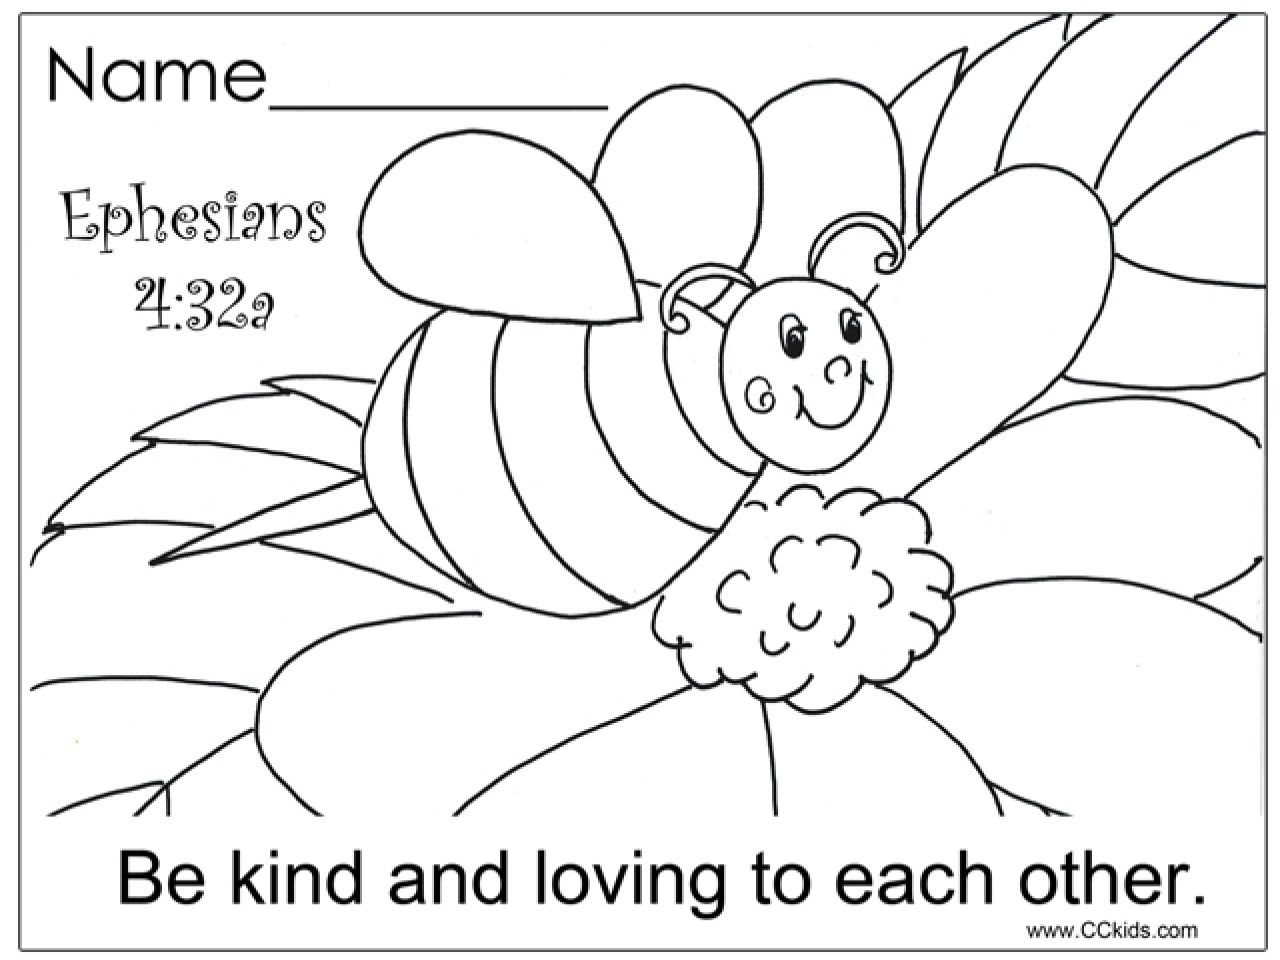 Image Result For Ephesians 4 32 Color Pages Sunday School